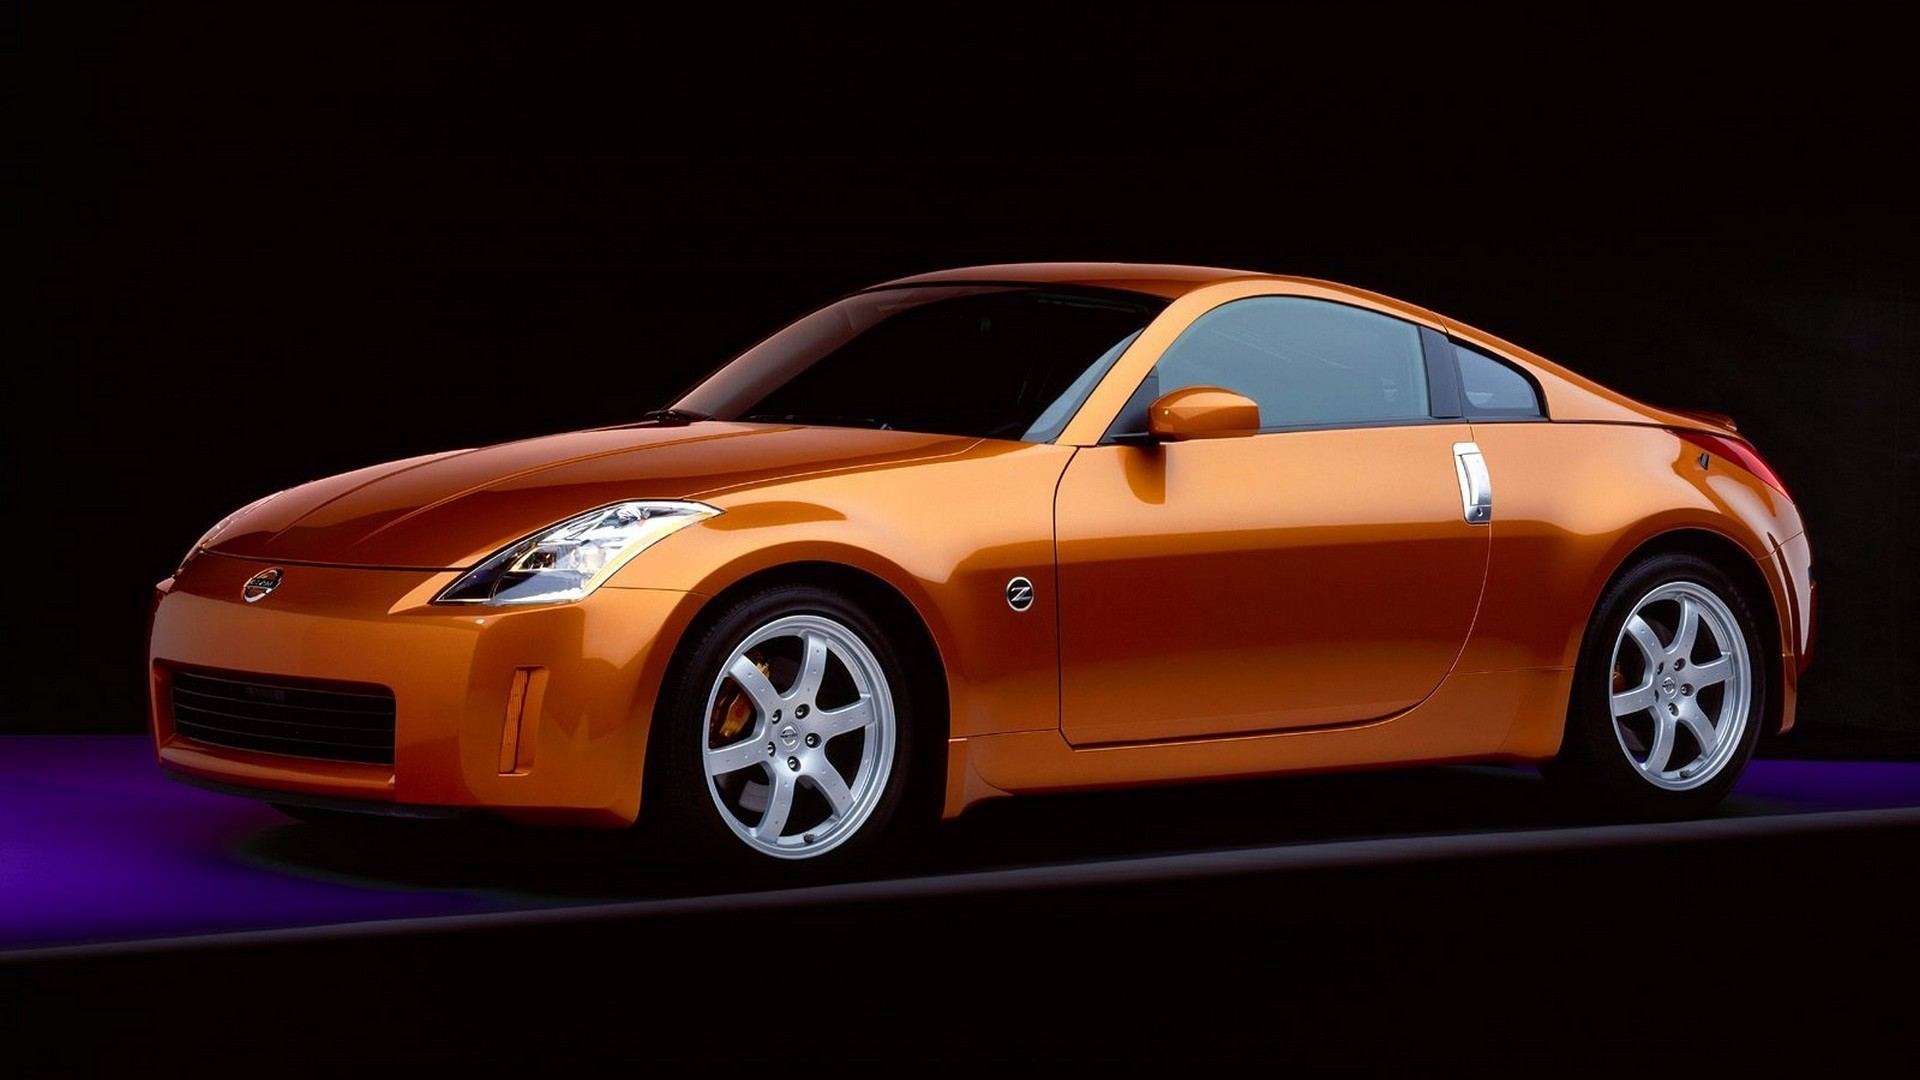 1920x1080 Orange Nissan 350Z on a black background